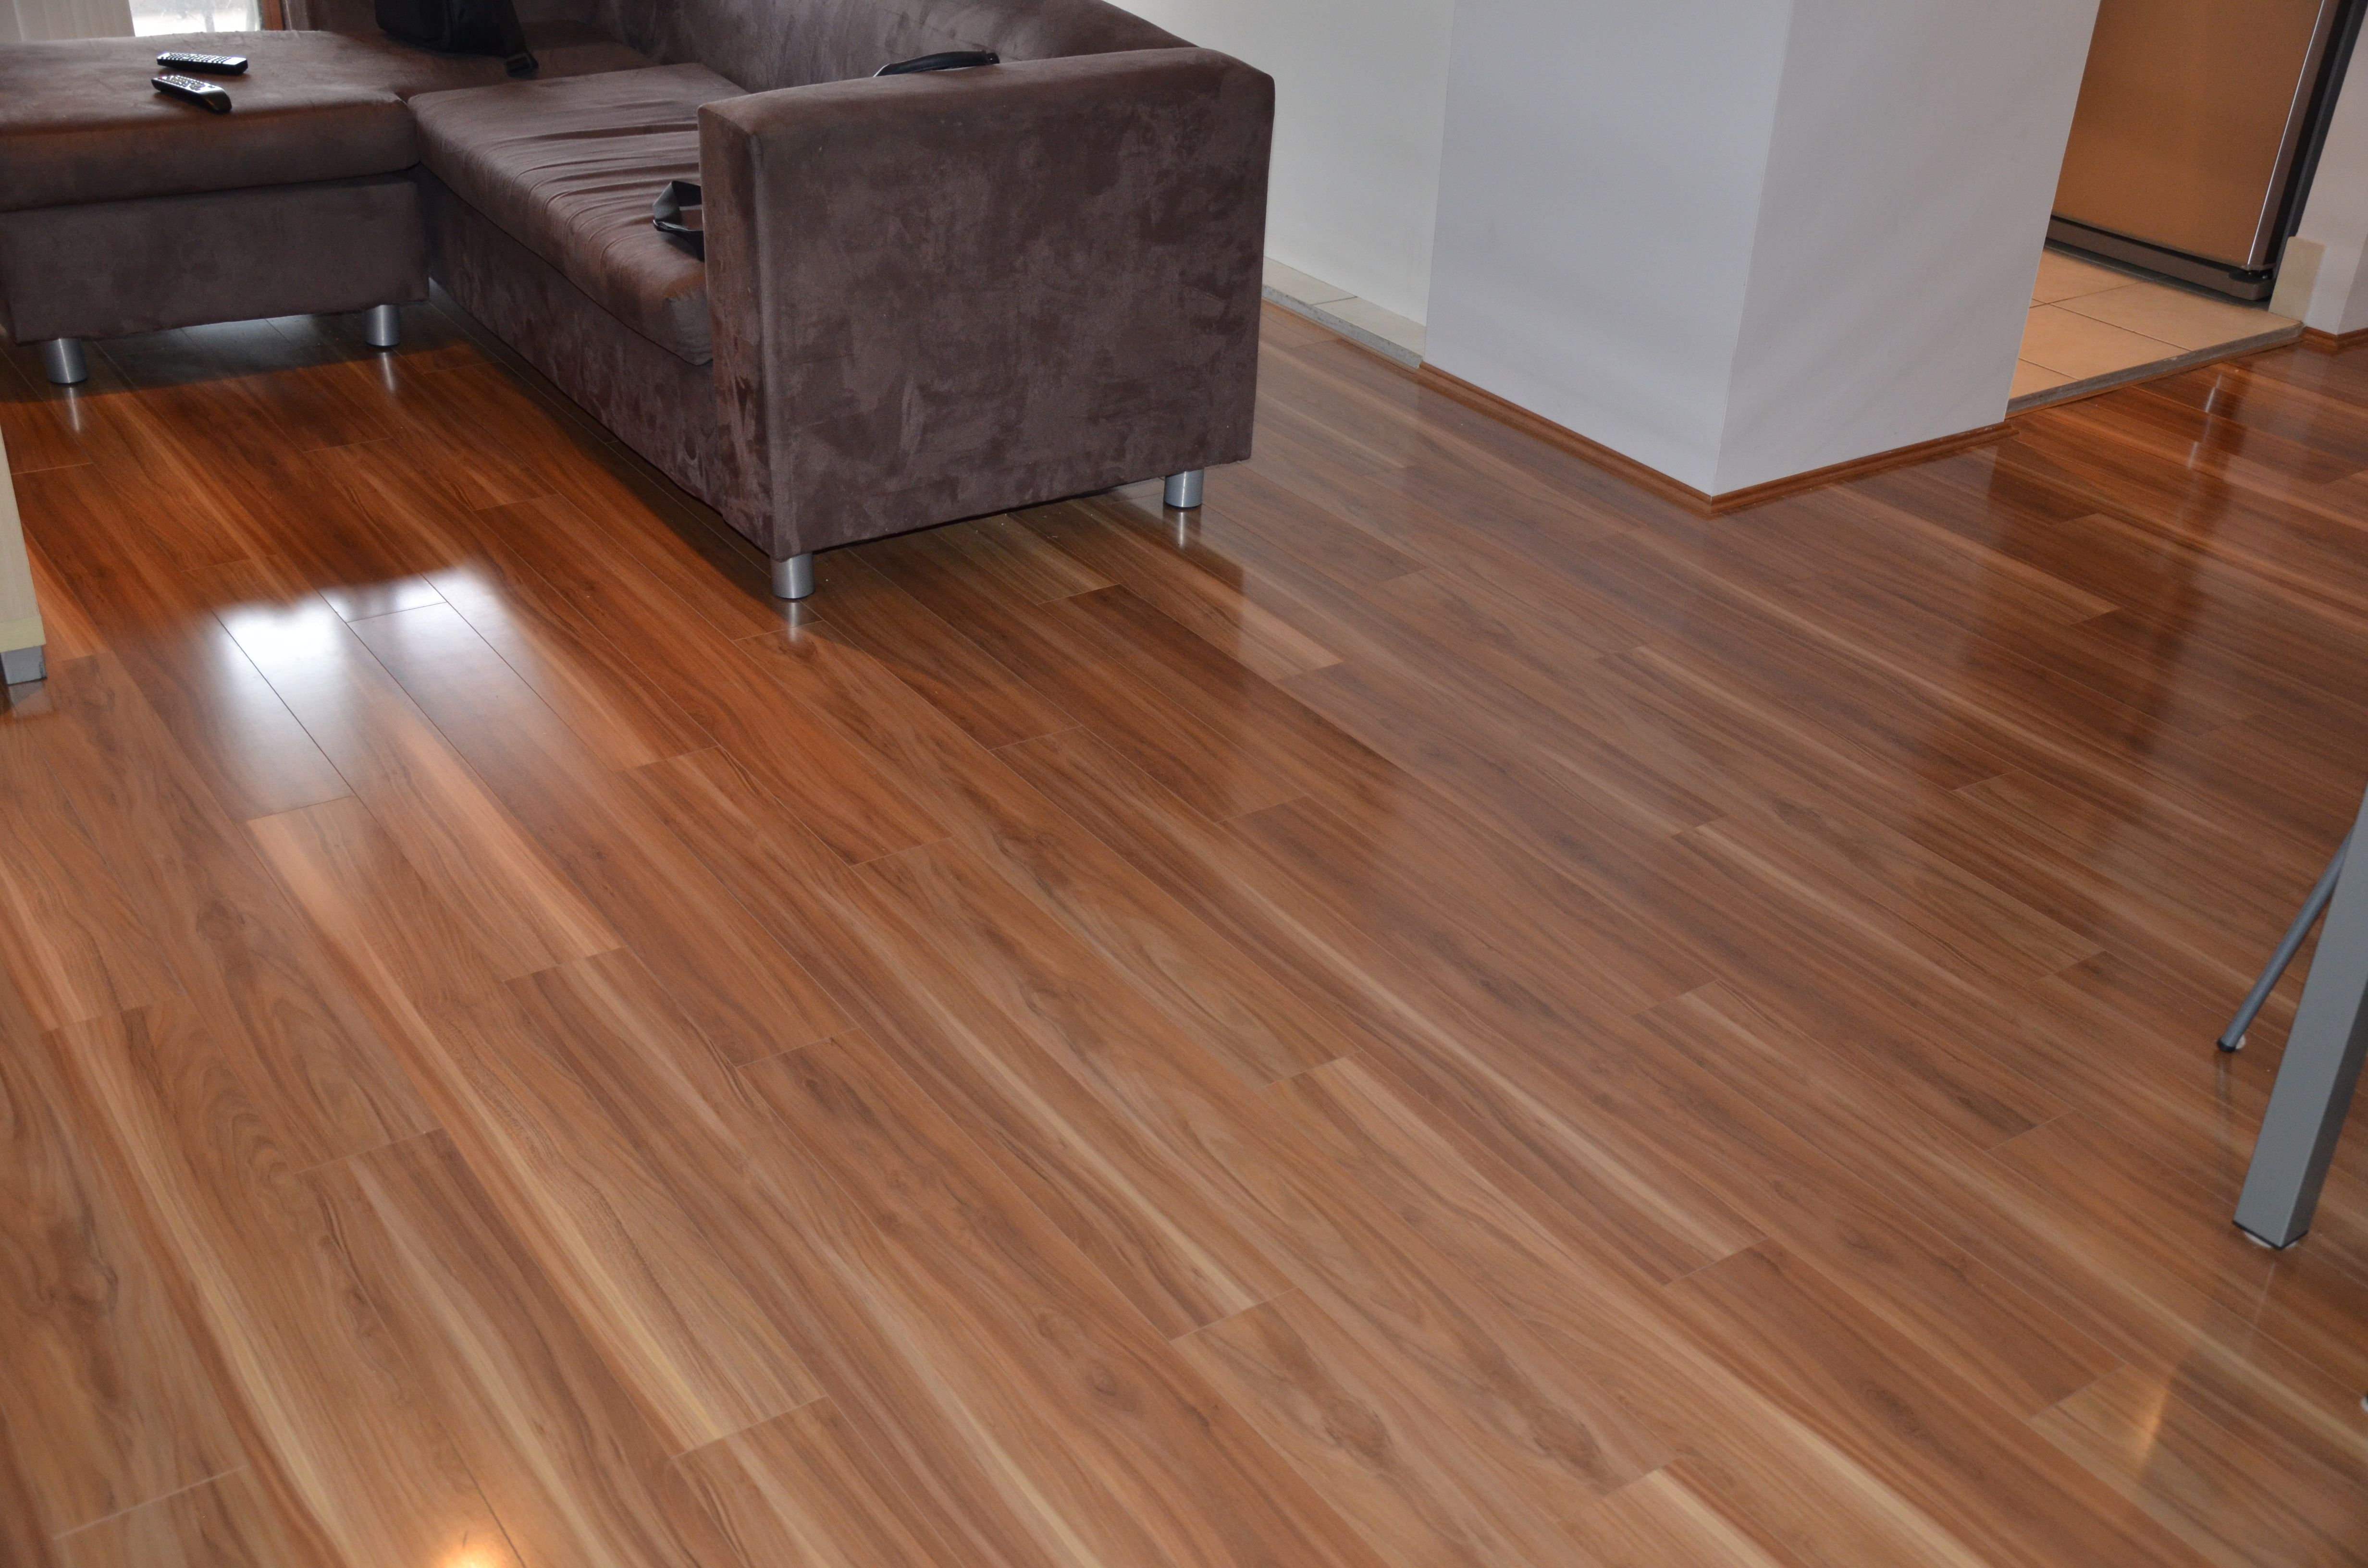 Woodtrends Tallowood Laminate Laid In Lounge Room And